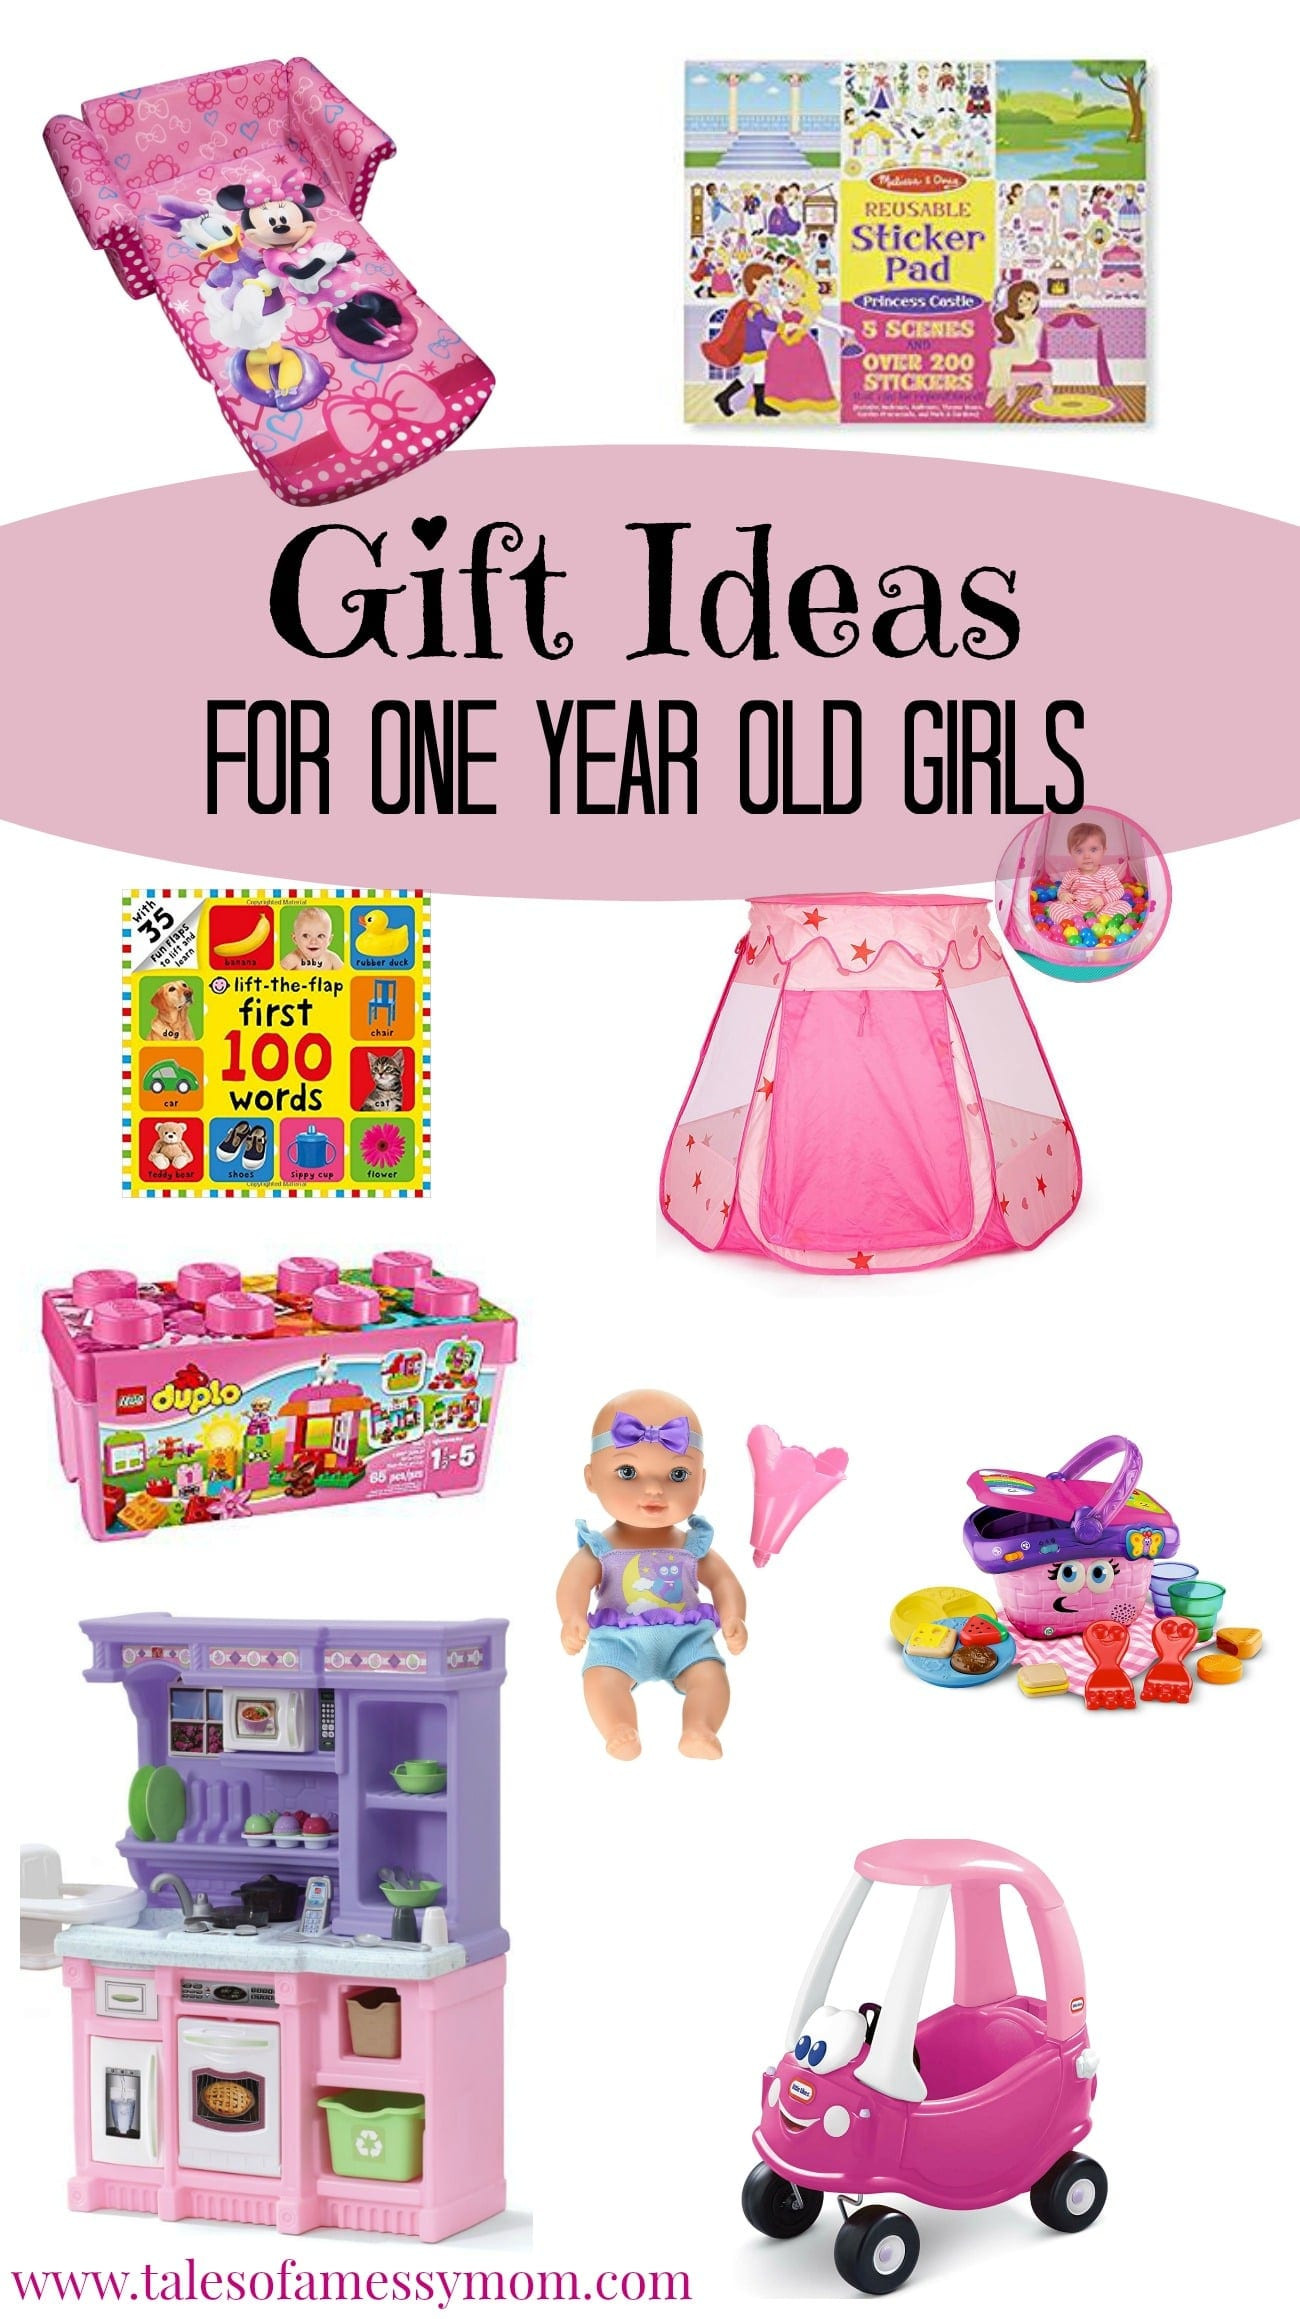 Gift Ideas Girls  Gift Ideas for e Year Old Girls Tales of a Messy Mom